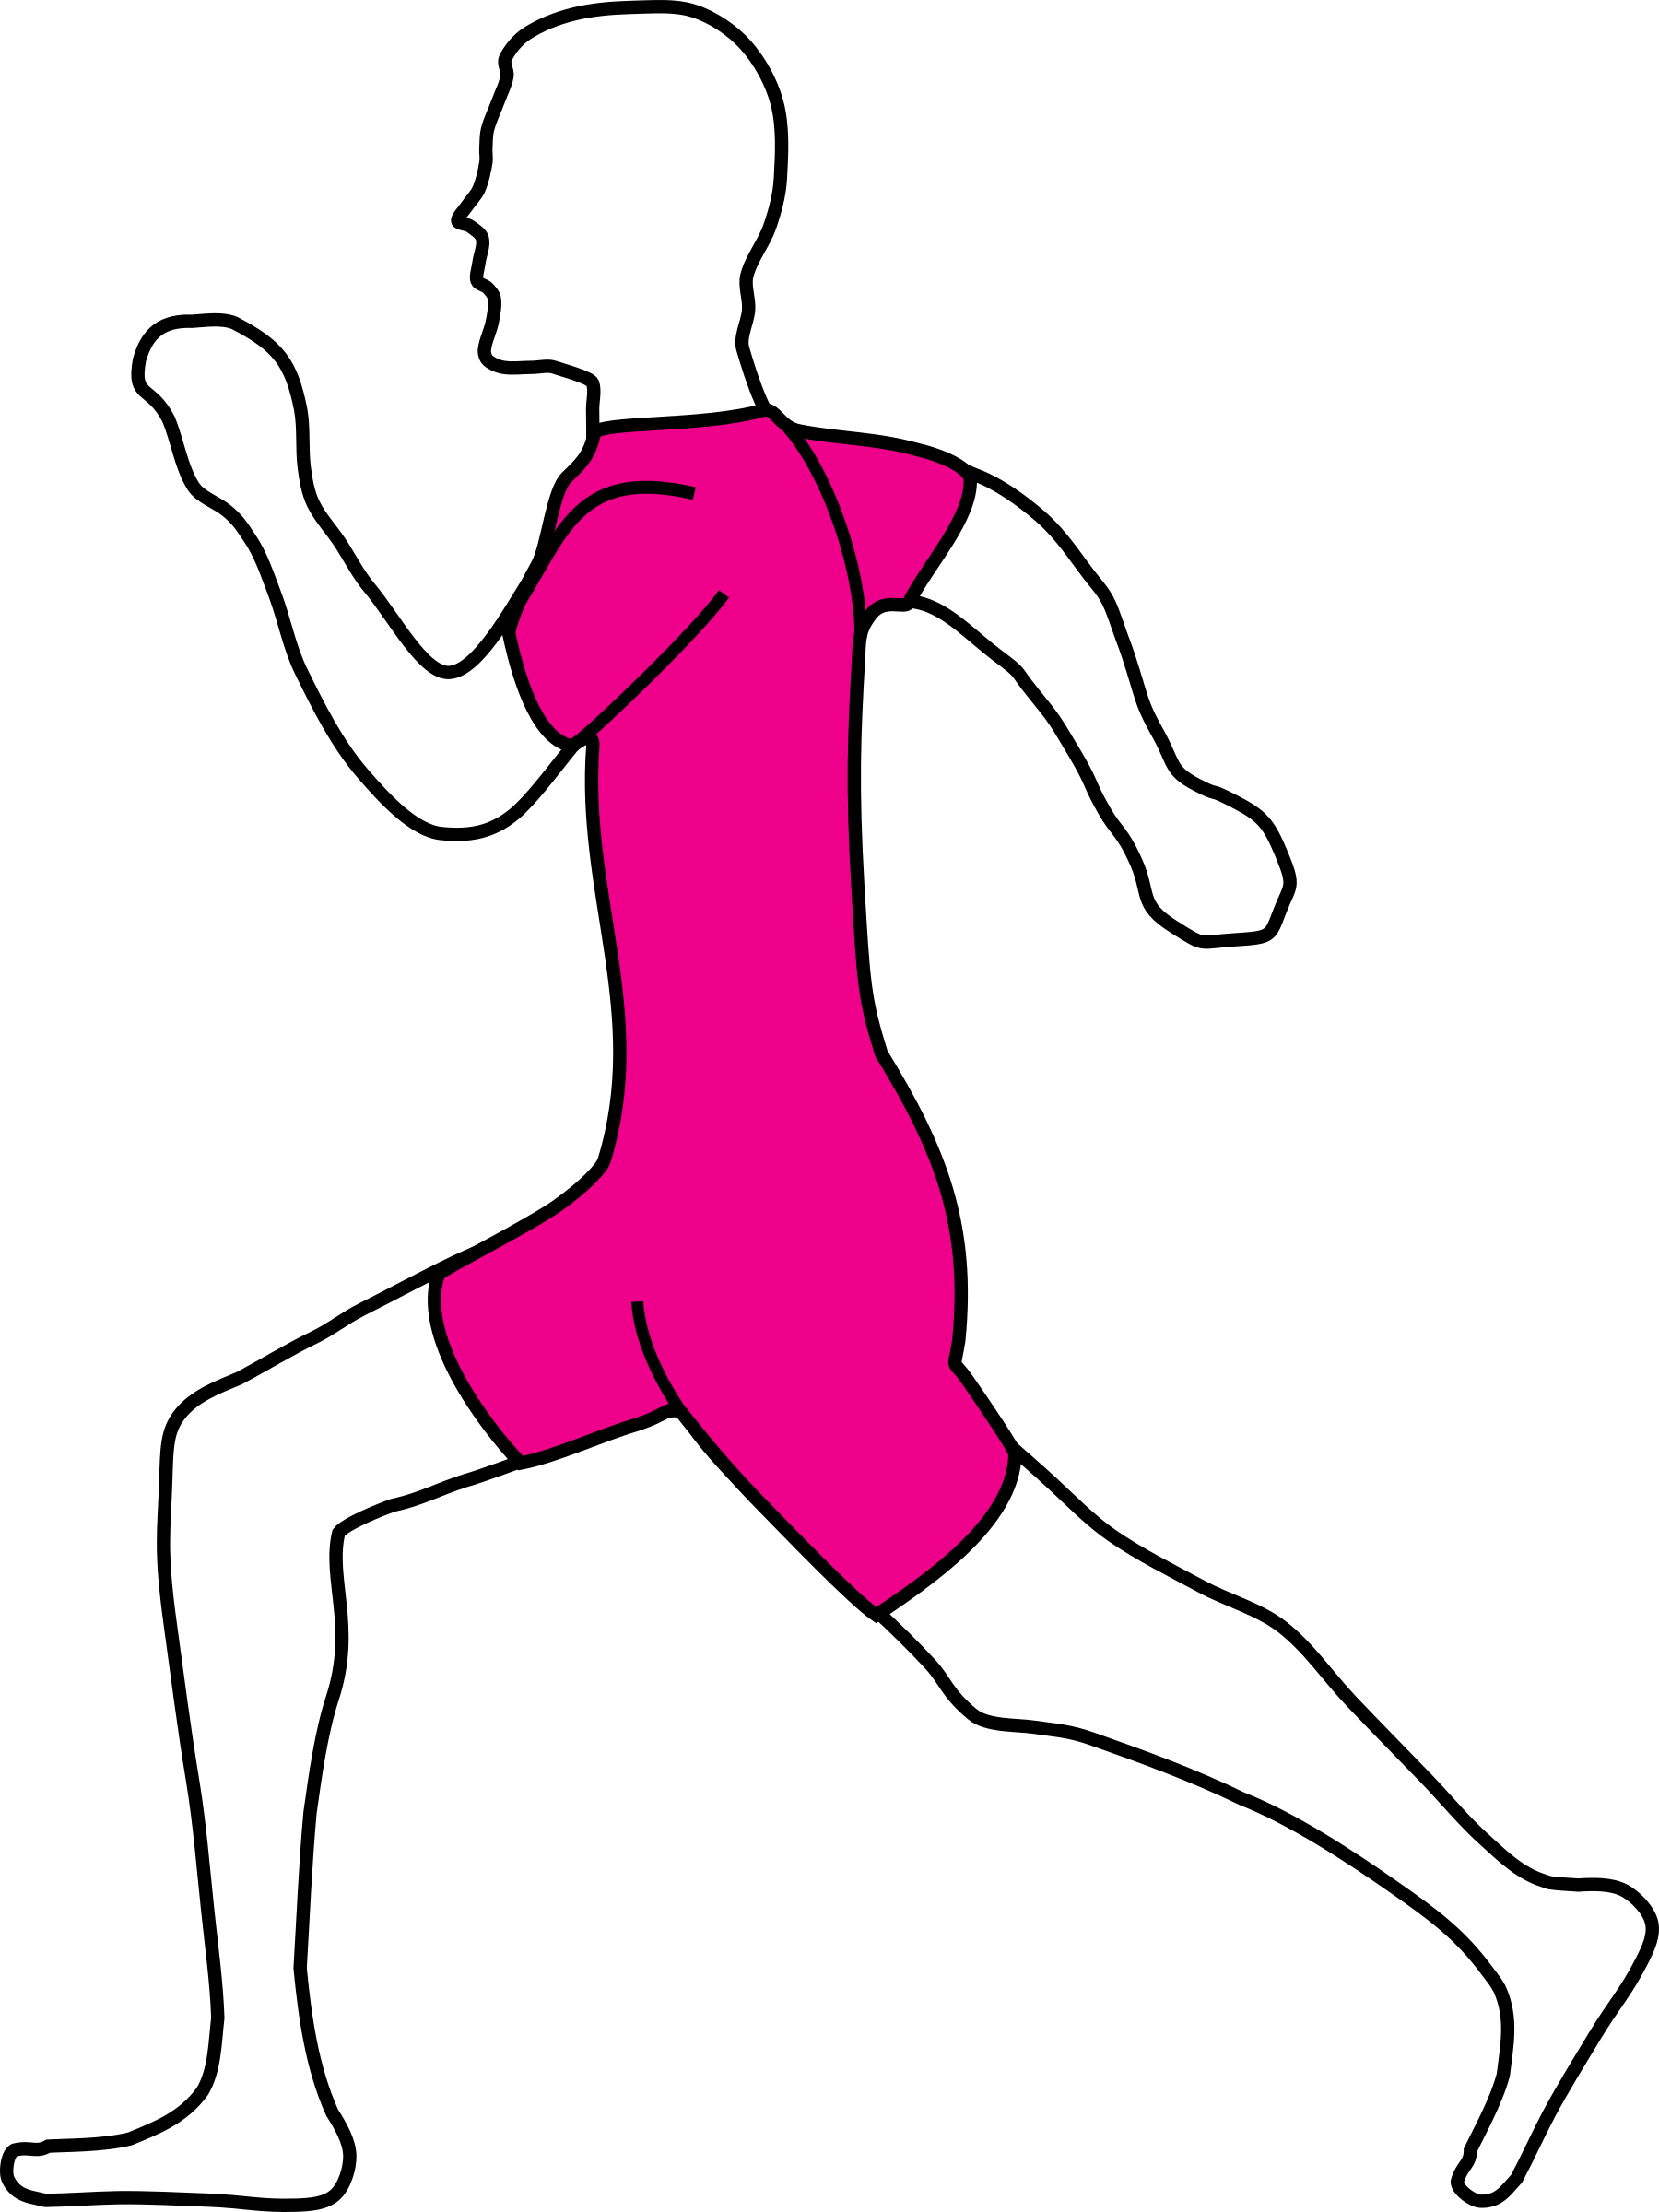 Clipart exercise jogging. Machovka big image png